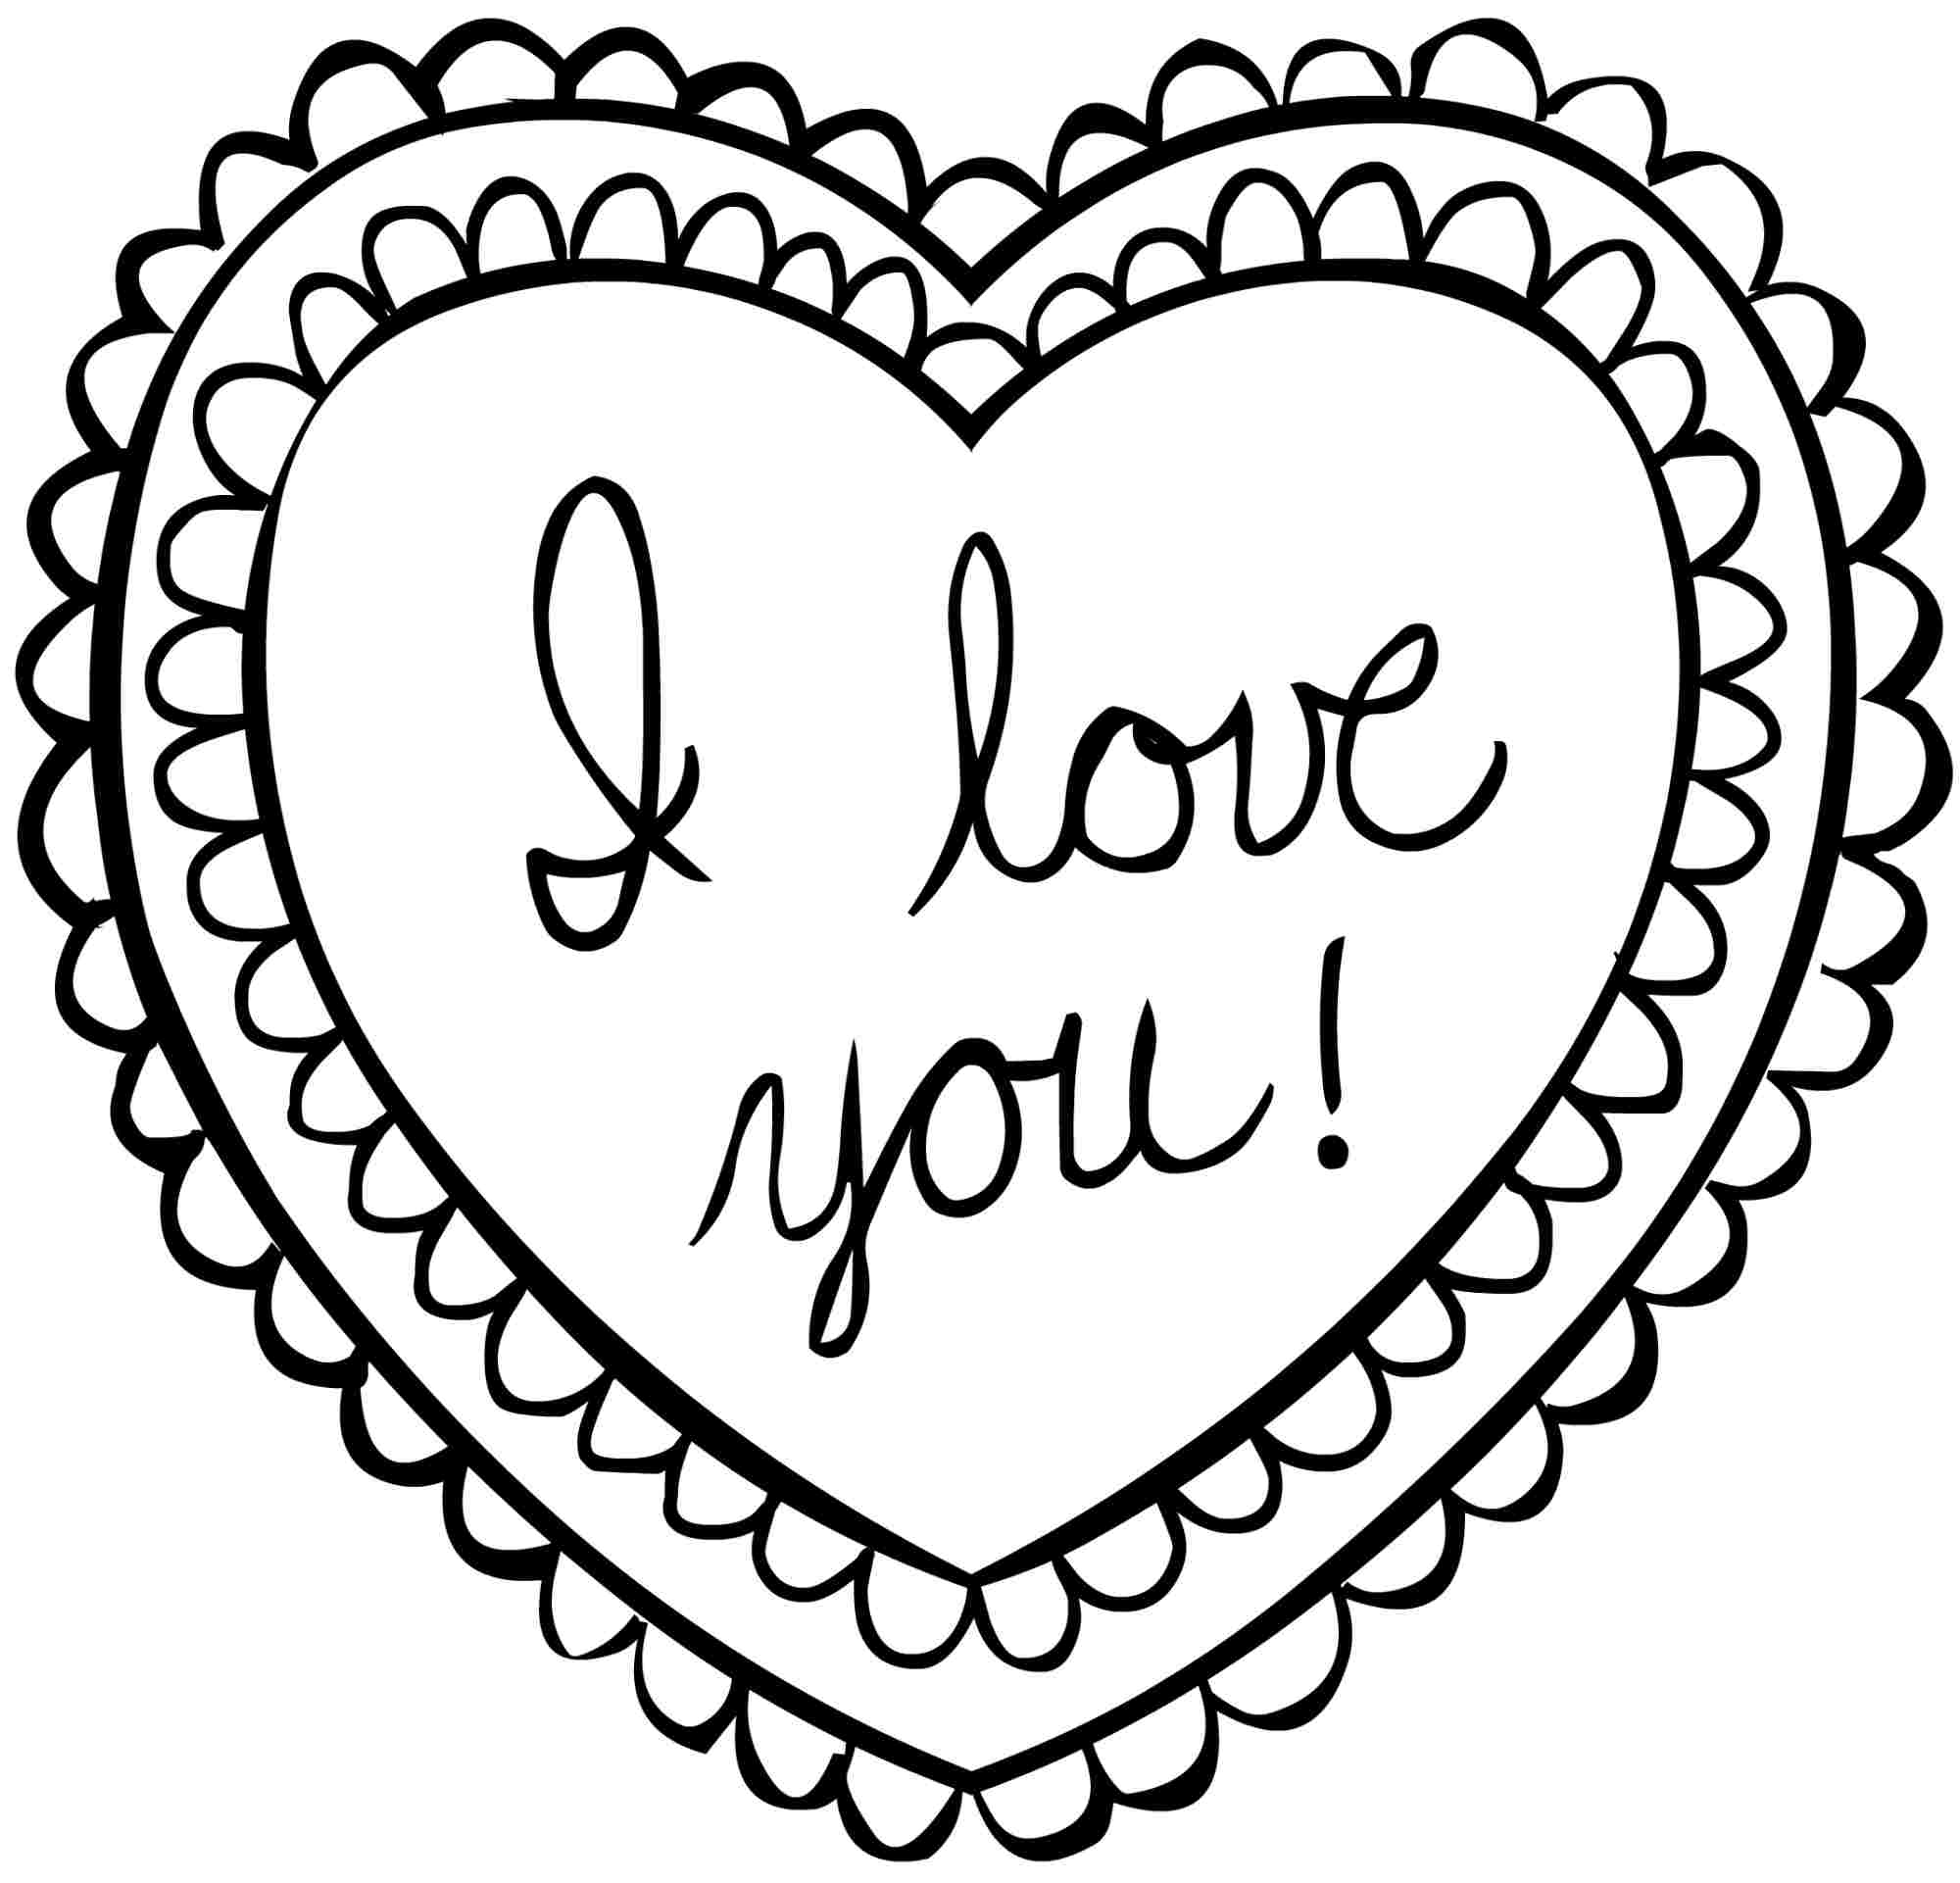 Coloring pages for boyfriend - Cute Coloring Pages For Your Boyfriend Coloring Home